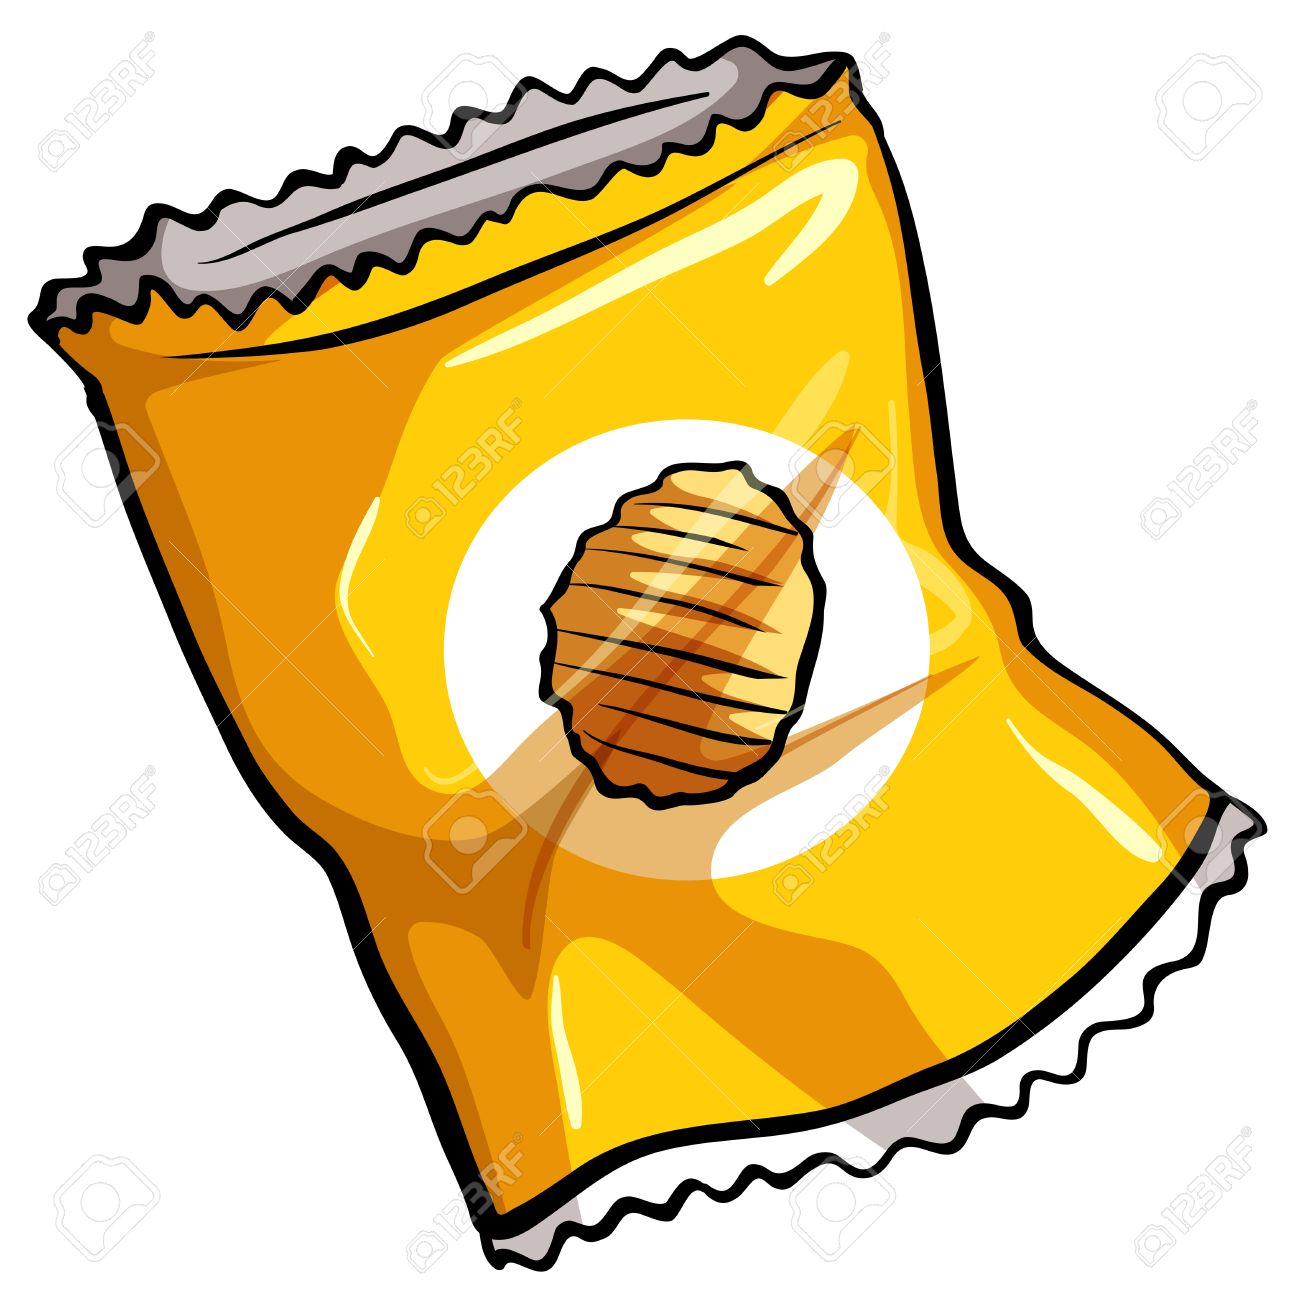 A pouch of potato chips on a white background.